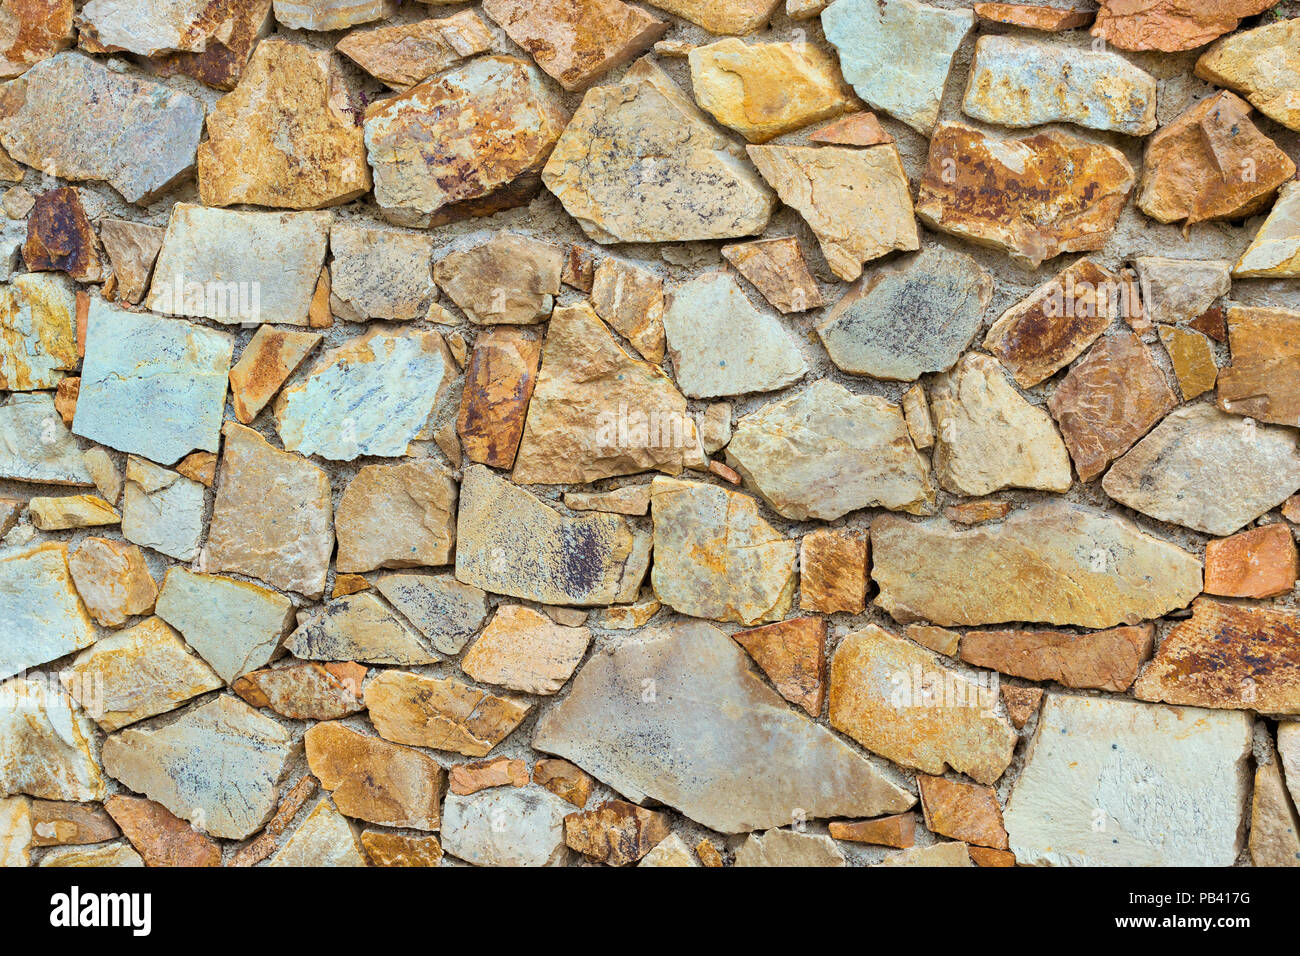 lovely Decorative Stone Wall Part - 7: Decorative stone wall, pieces of rock bonded with cement. Cobble texture  with cracks. Mountain of castle San Juan. Spanish beach resort Blanes in  summ